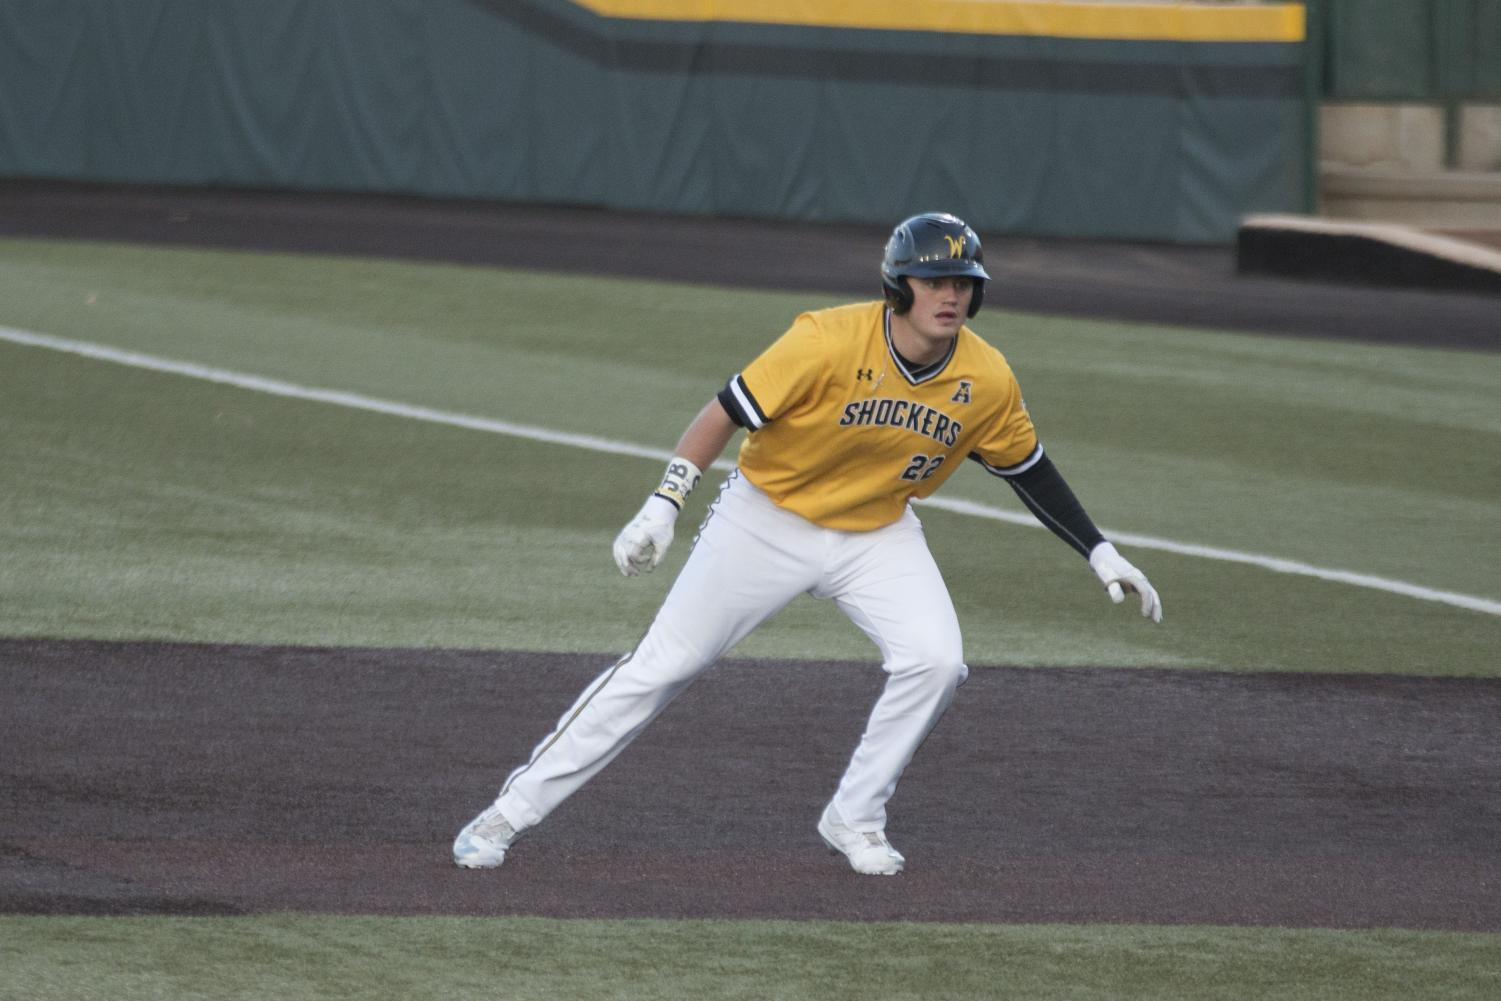 Wichita State Mason O'Brien watches the pitch from first base during the game against the Sooners.